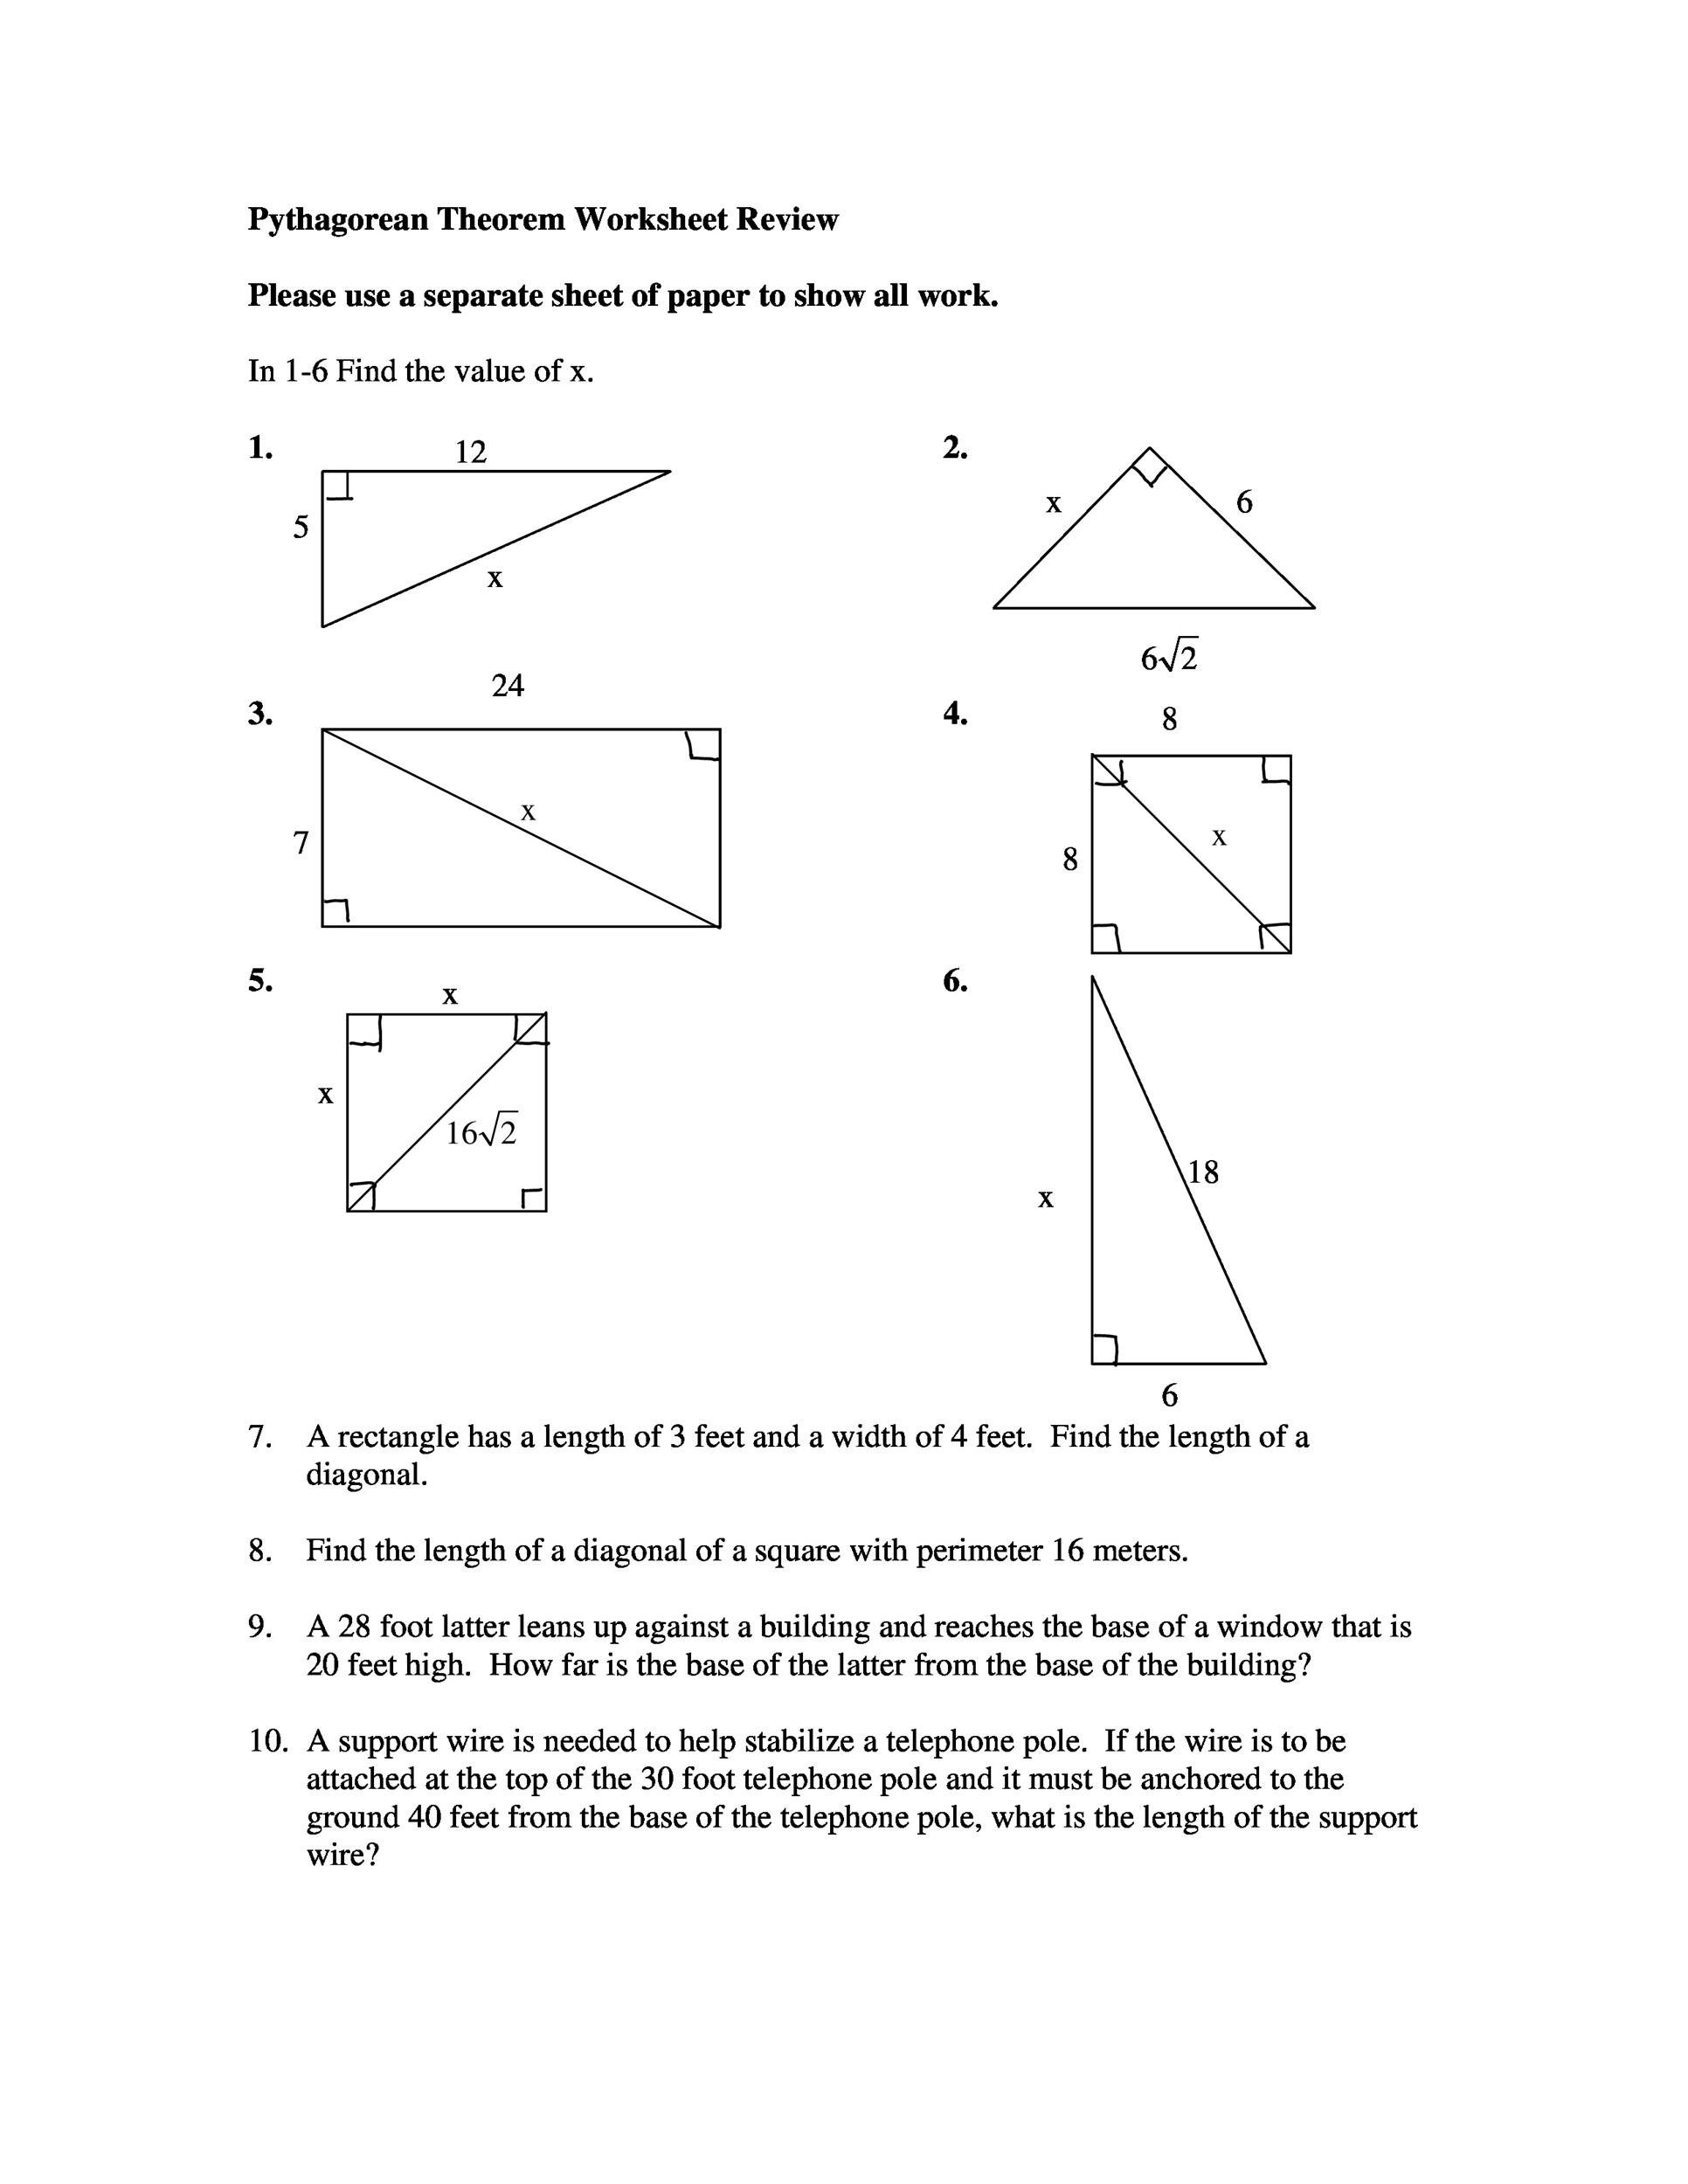 Pythagorean theorem Worksheet with Answers Pythagorean theorem Perimeter Worksheet